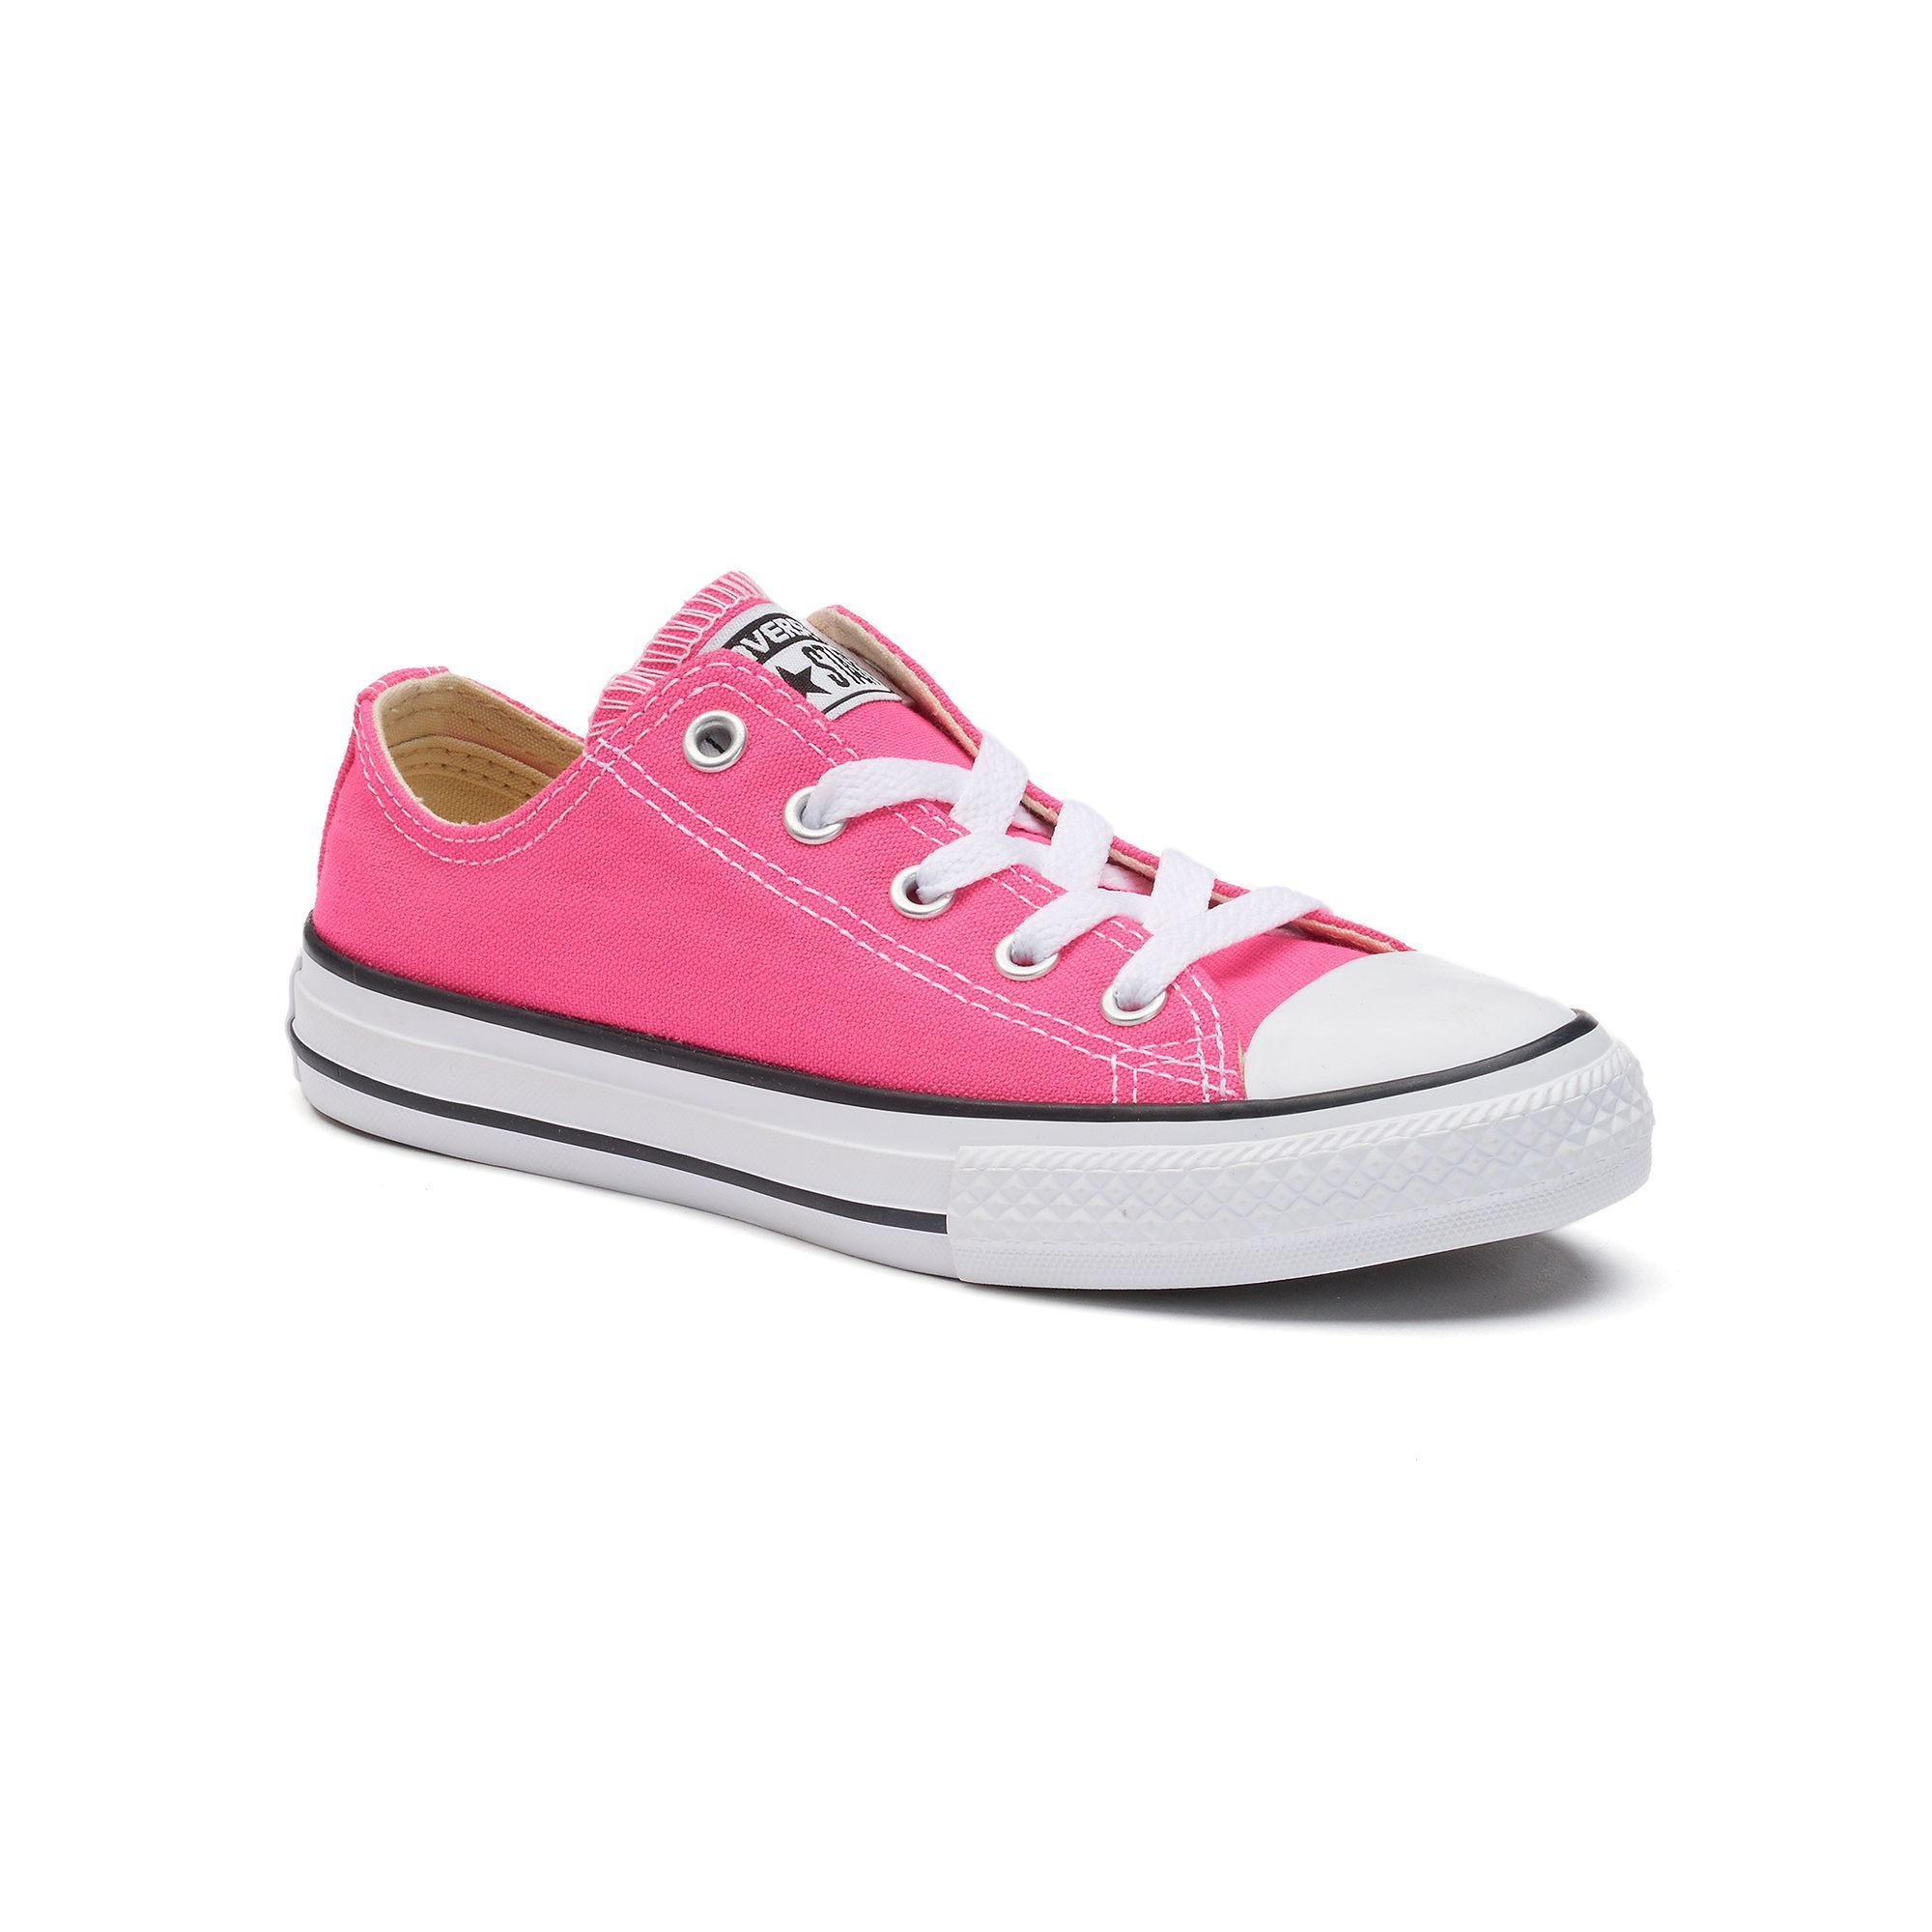 competitive price 5018f a9ff1 Kids' Converse Chuck Taylor All Star Sneakers | Products ...